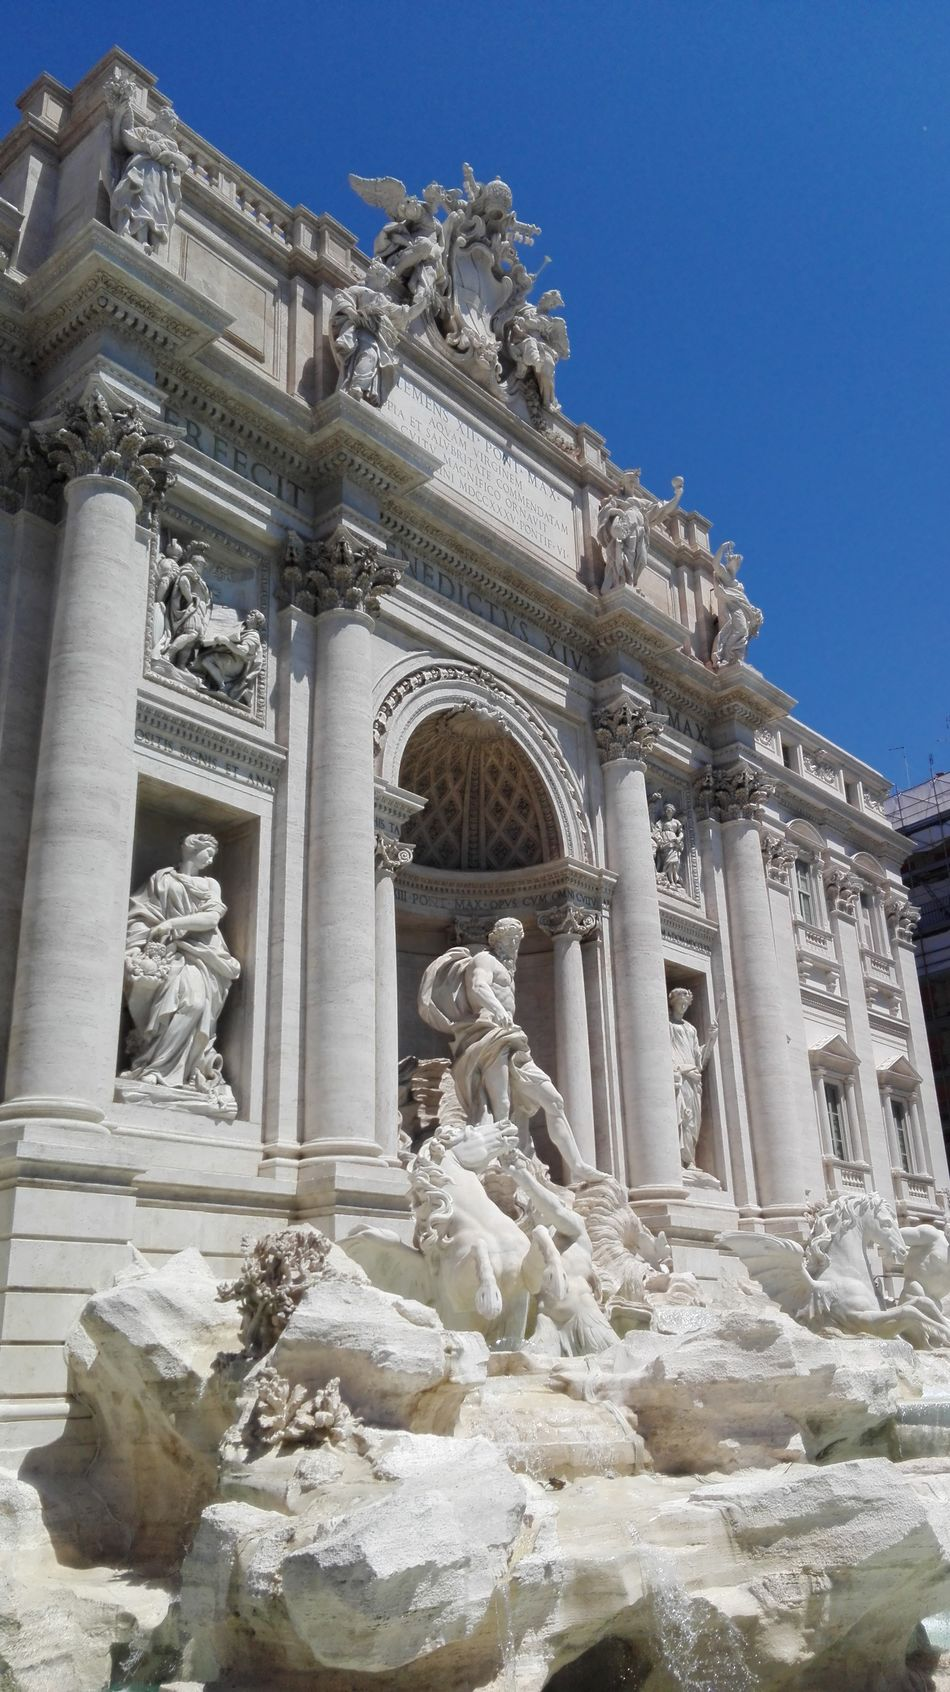 Sky Of Rome Rome Italy Rome Beutiful World Hello World No Edits No Filters Sky Blu Of Rome Architectural Detail Architecture_collection Fontain Fontana Di Trevi Magnifique Details Monuments Fontana Di Trevi Rome